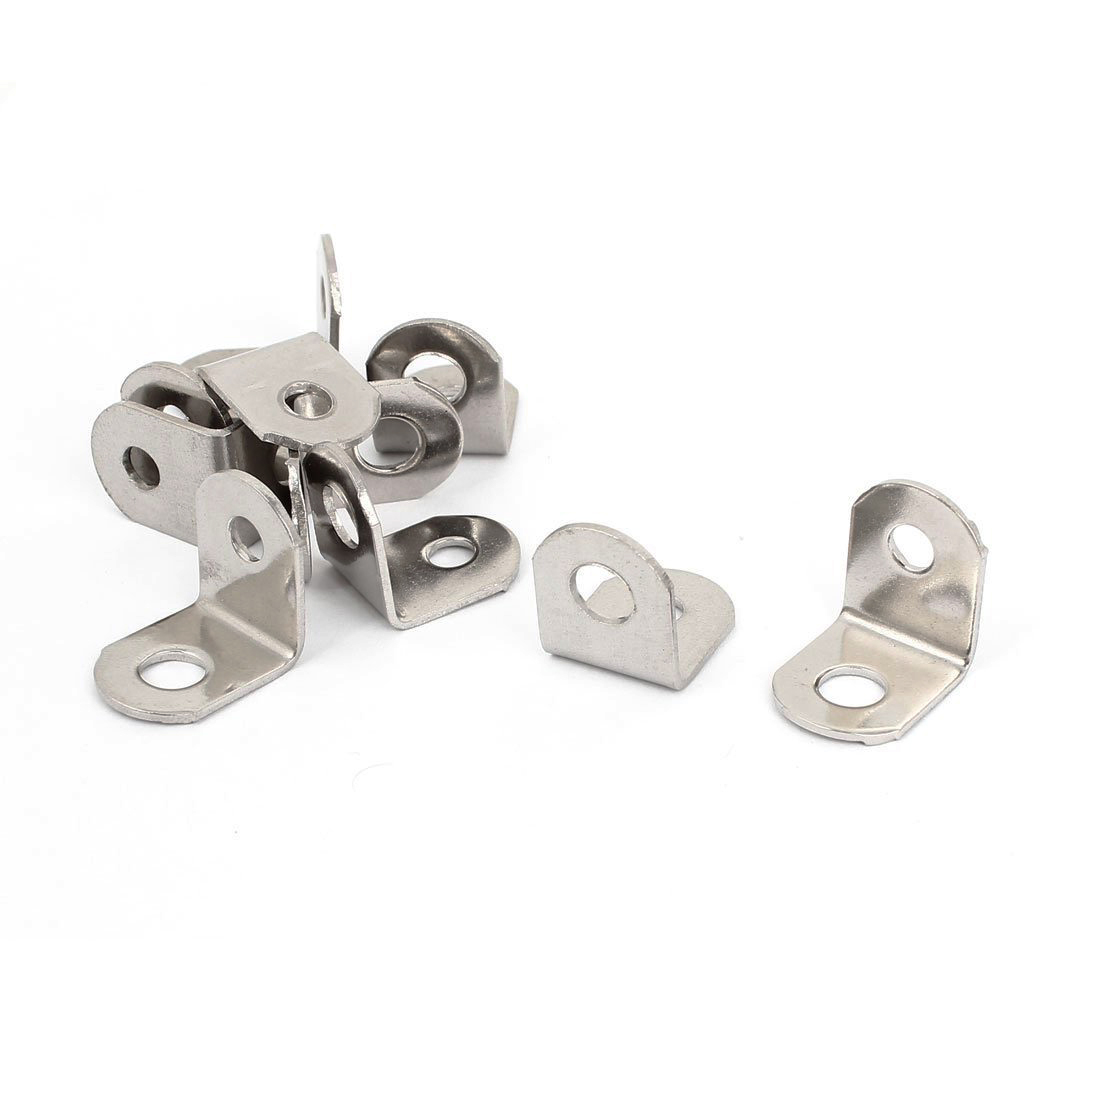 10 Pcs Stainless Steel Corner Brace Joint Right Angle Bracket 17x17mm Silver 10 pcs lot silver color metal corner brace right angle l shape bracket 20mm x 20mm home office furniture decoration accessories